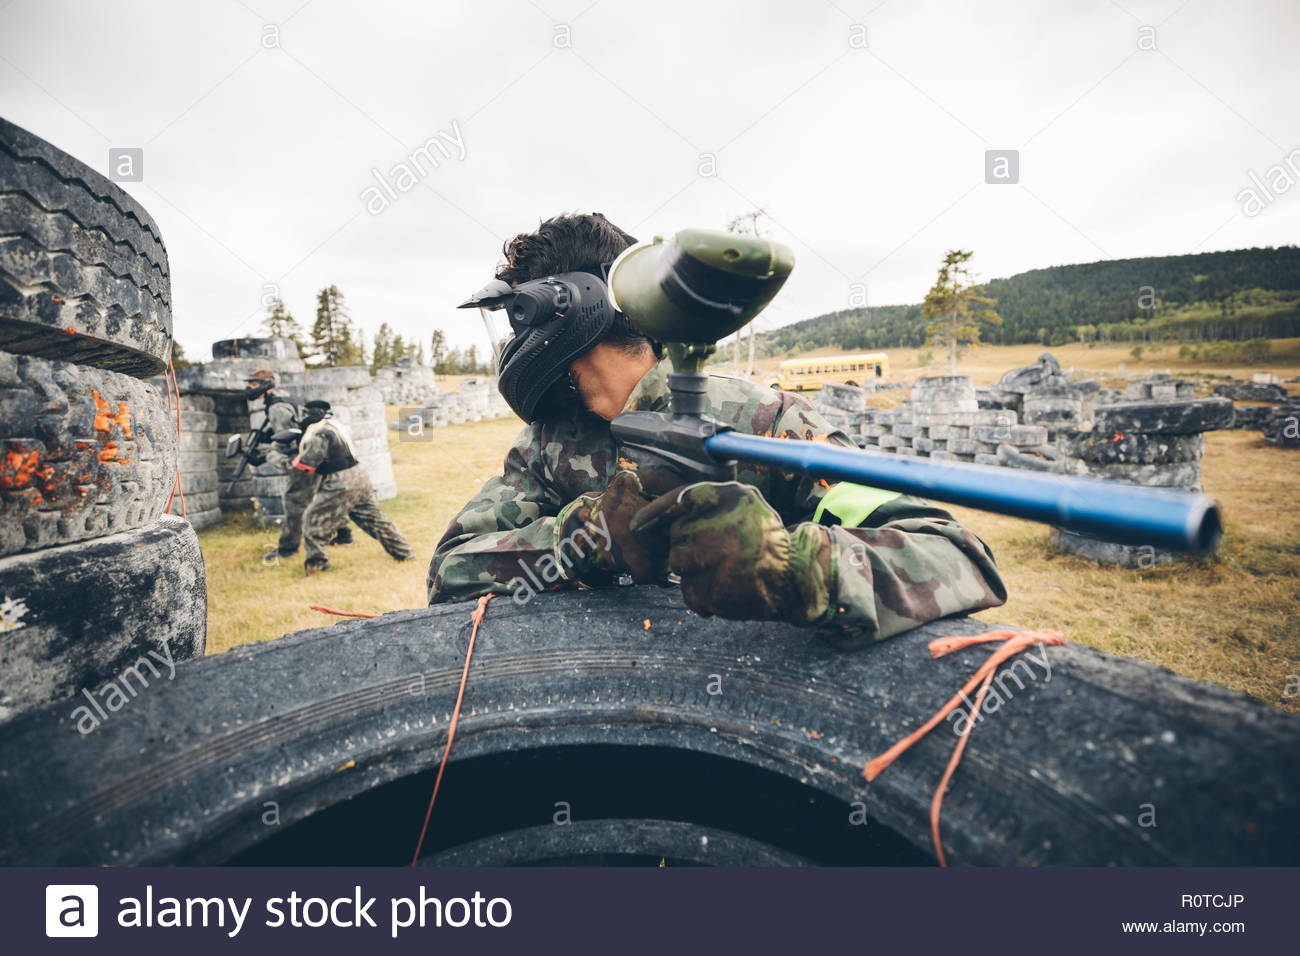 Young man paintballing, aiming gun - Stock Image